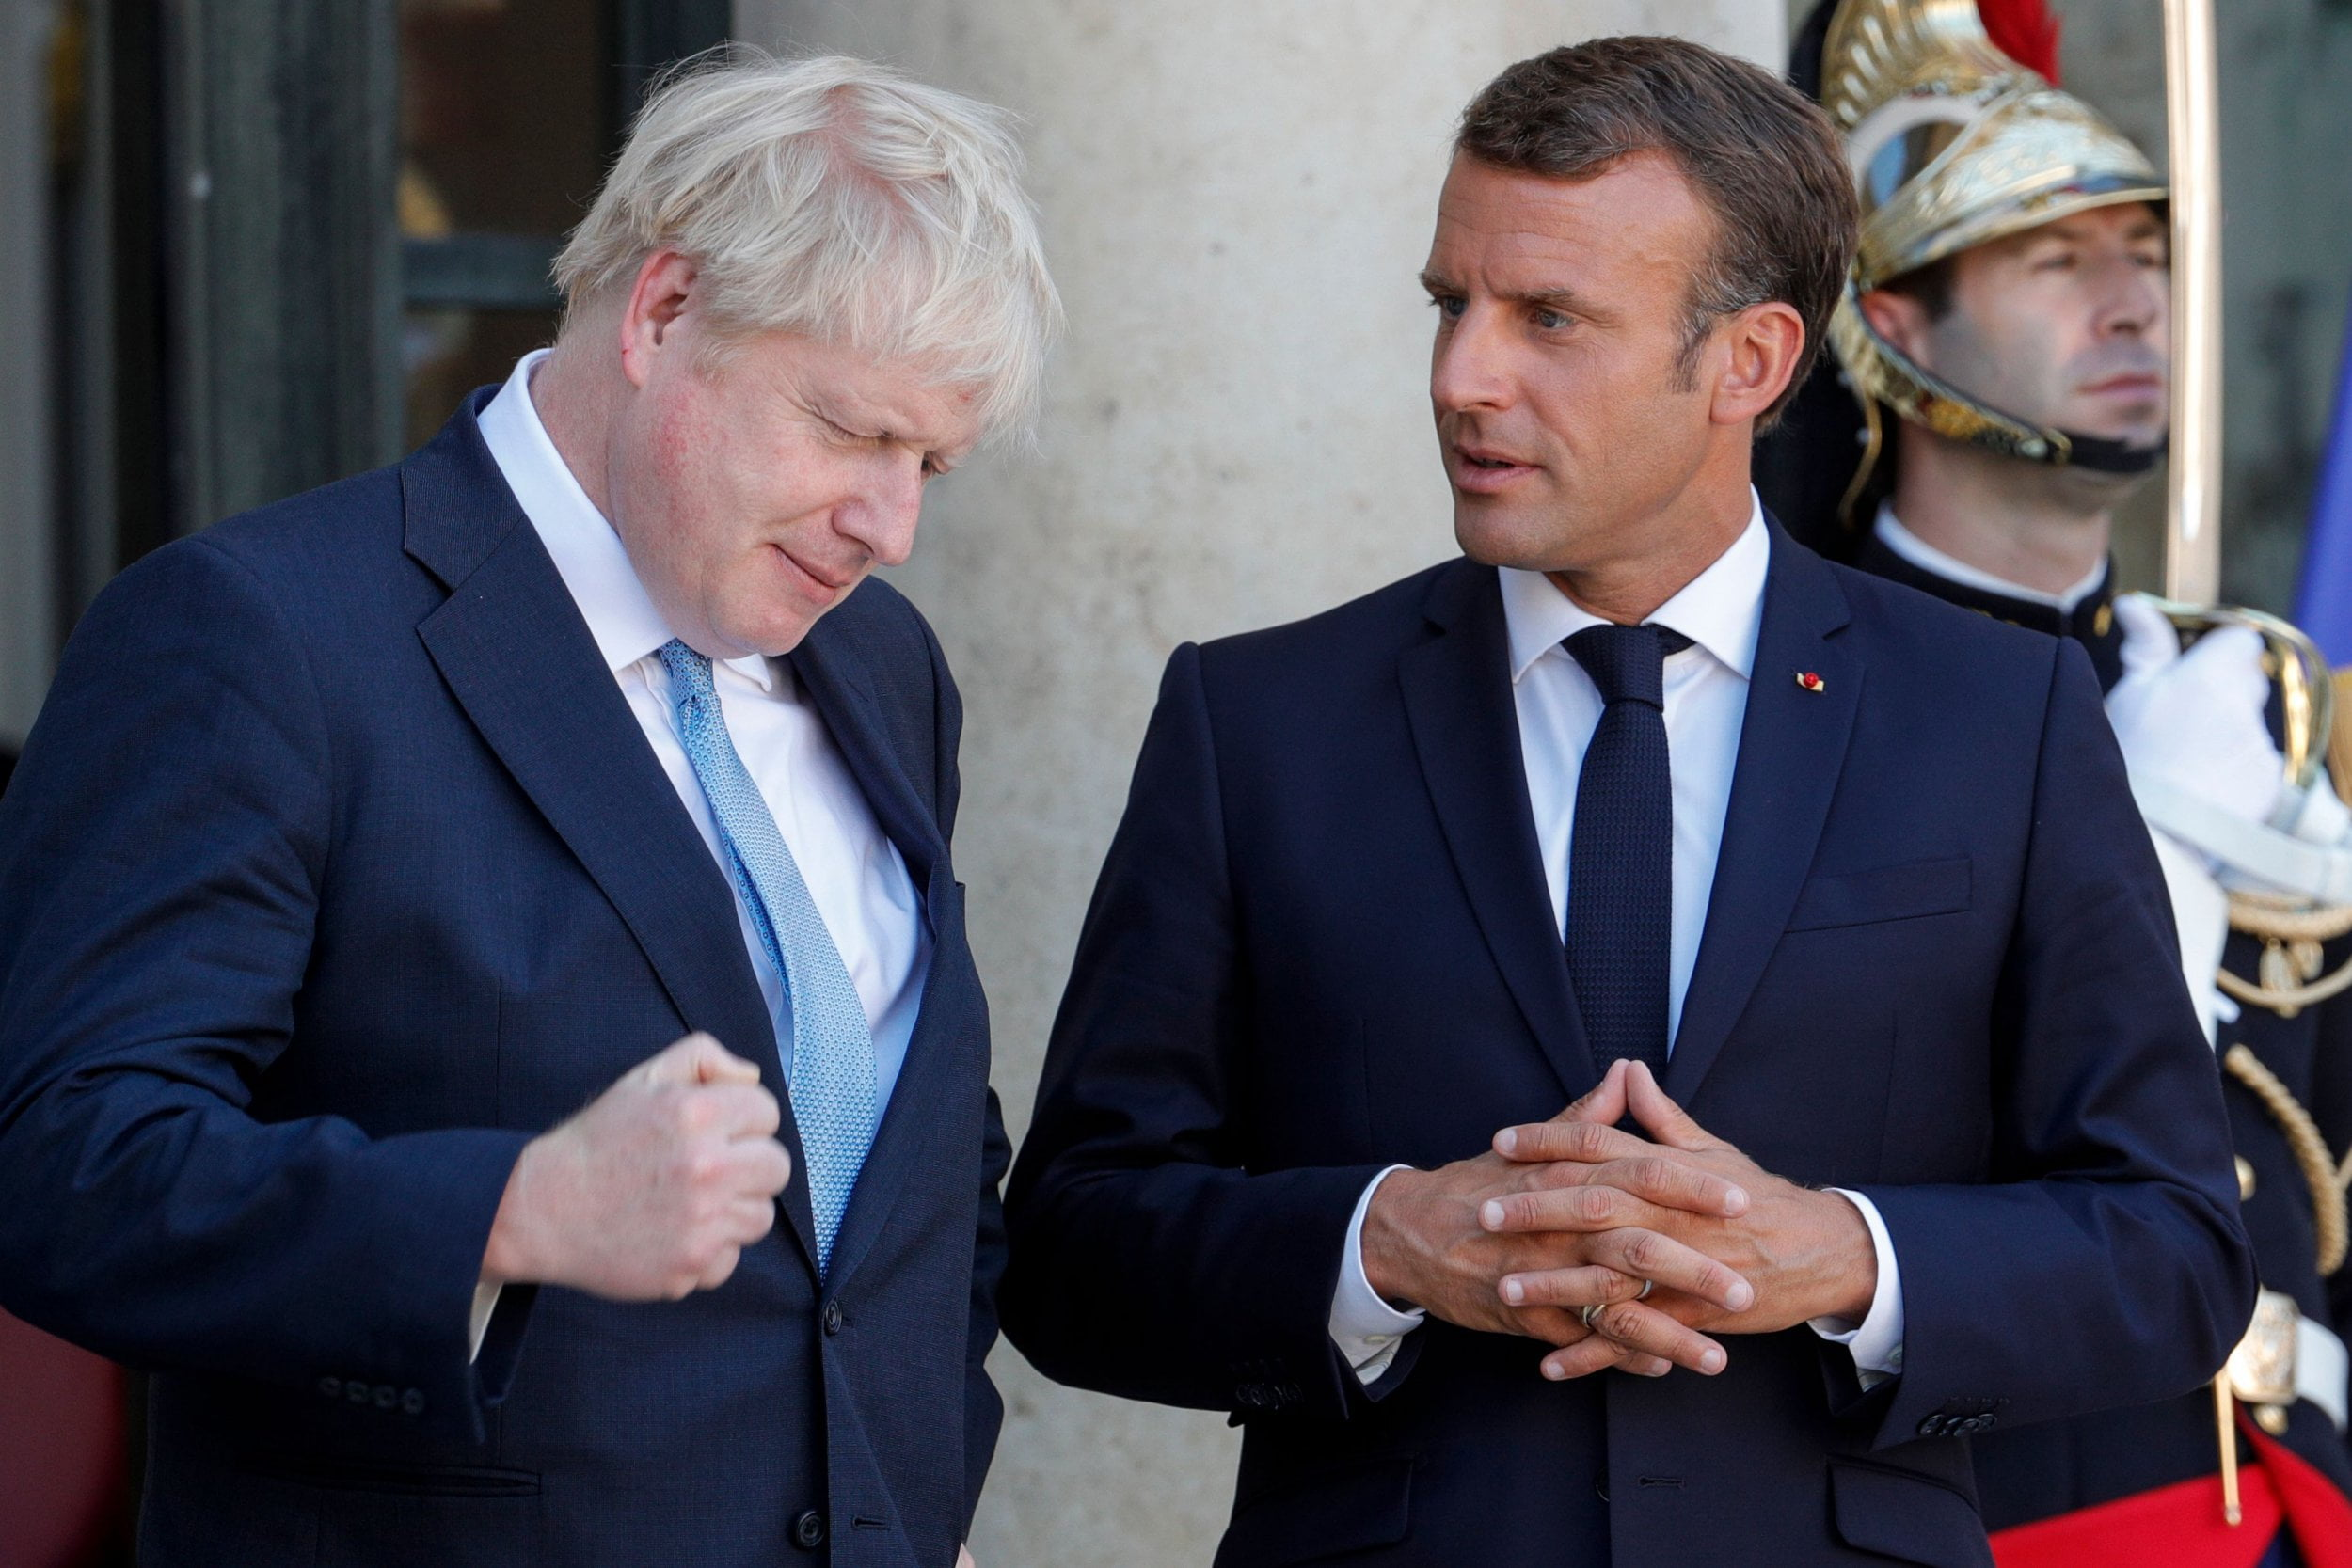 France warns Johnson that in the current situation the EU will not grant another postponement of Brexit